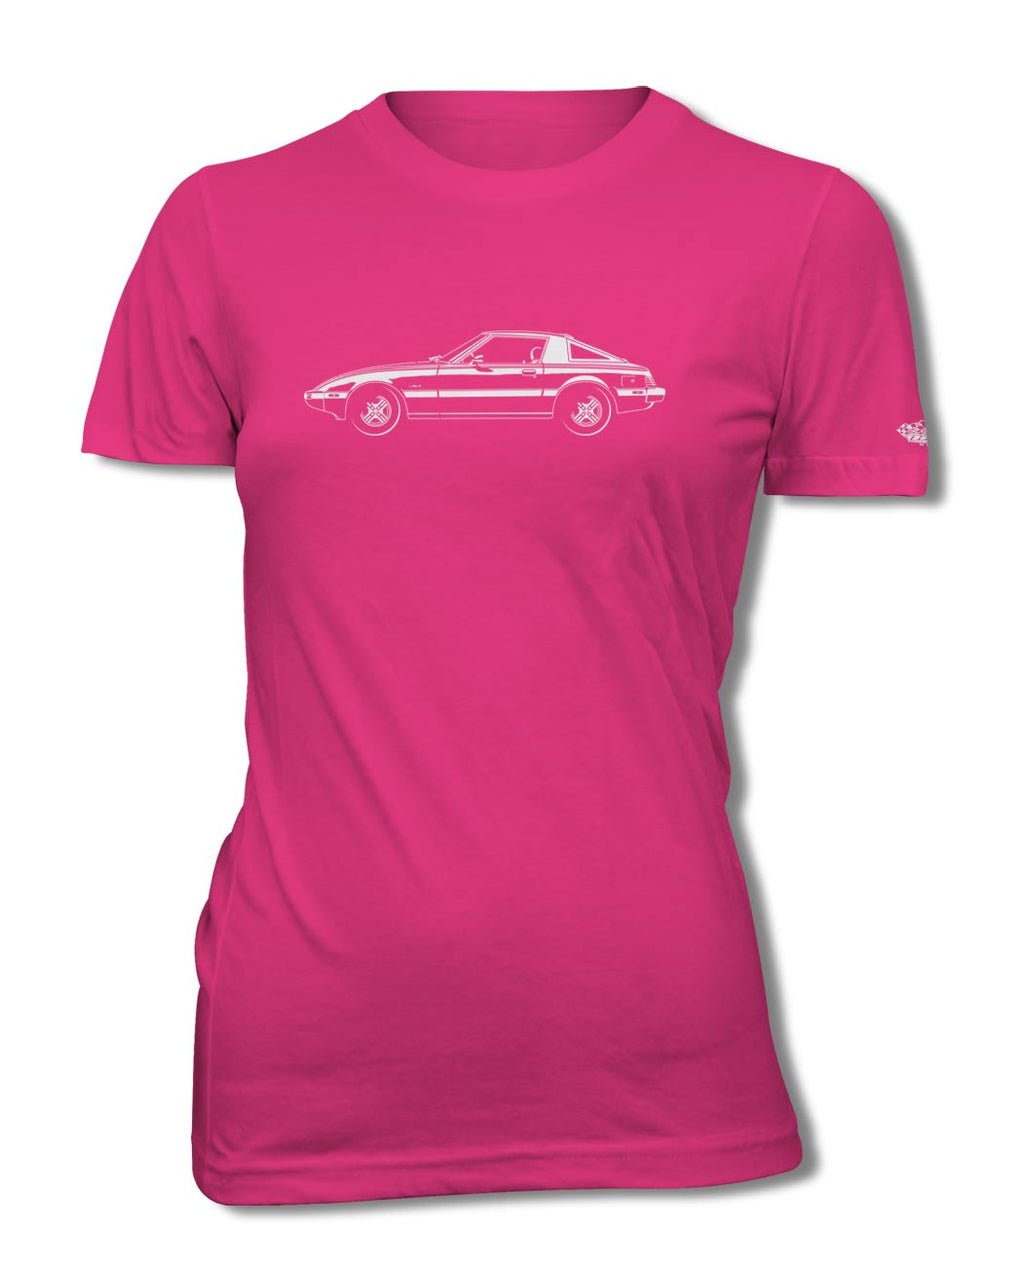 Mazda RX-7 S2 First generation 1978 - 1985 T-Shirt - Women - Side View